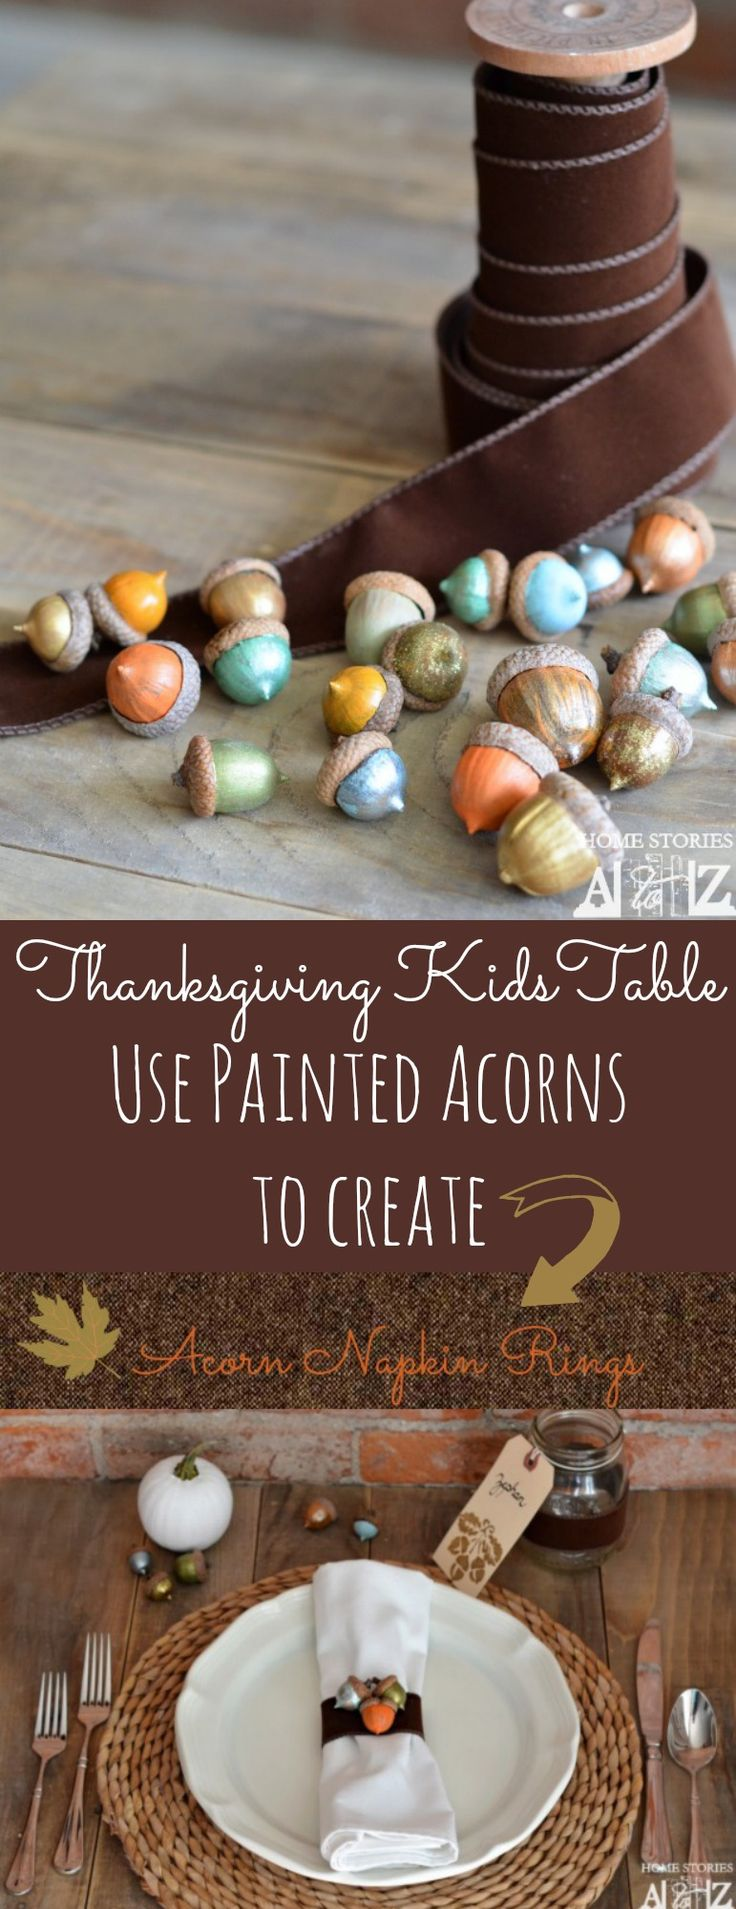 Acorn Crafts & Projects